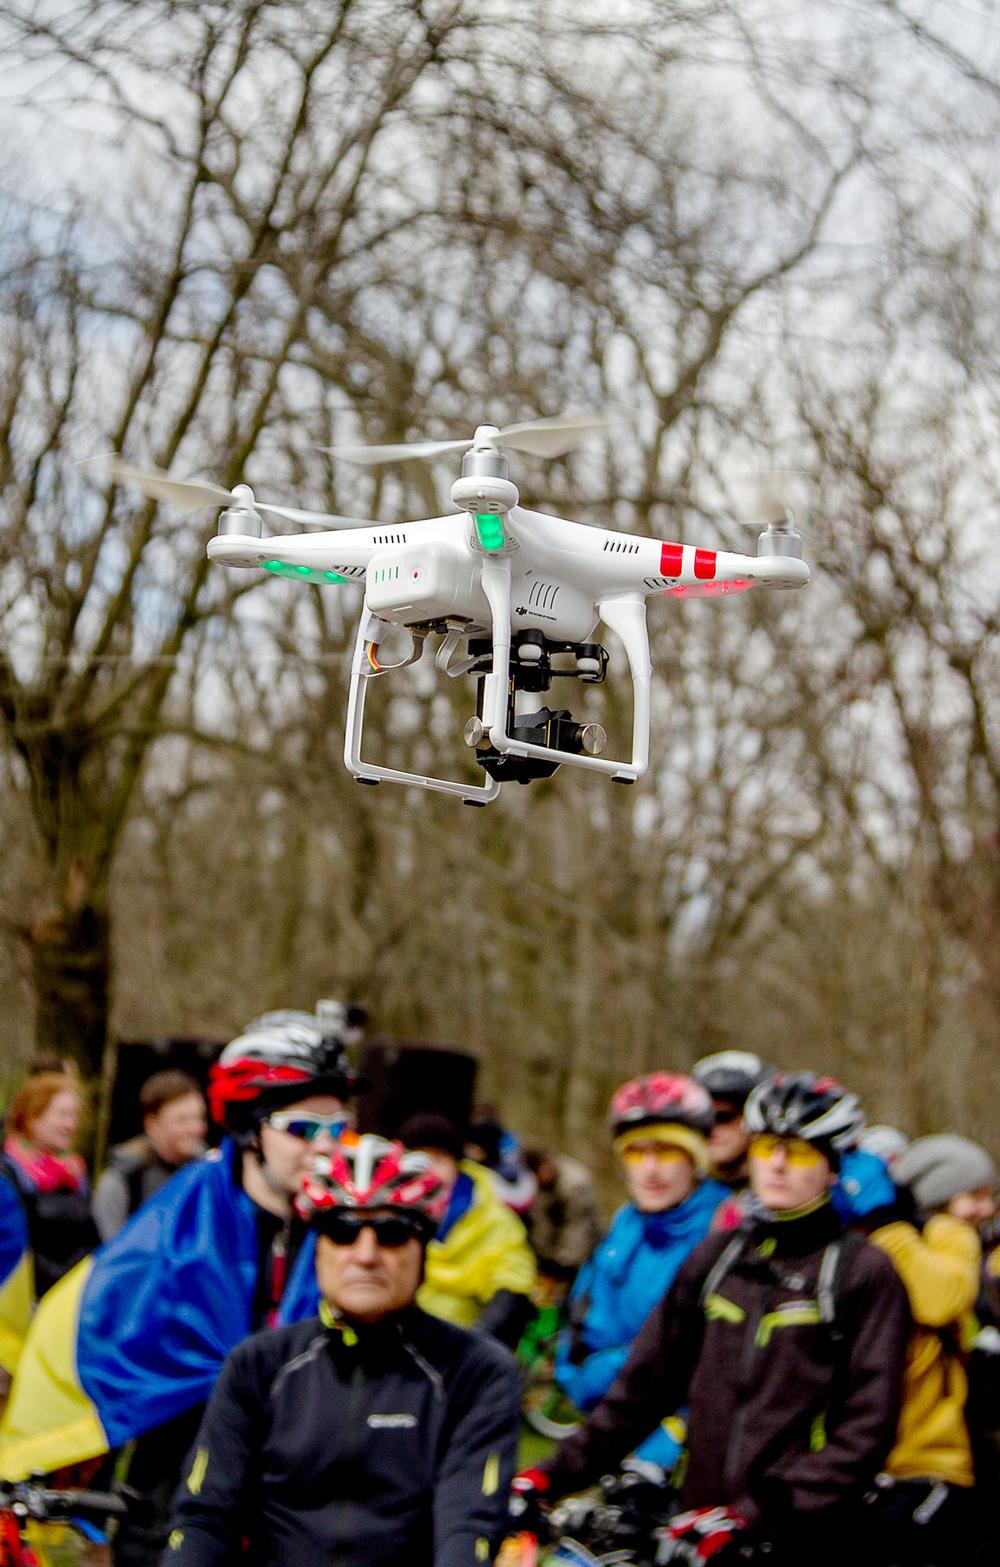 Drones now have a much wider application across all types of sports